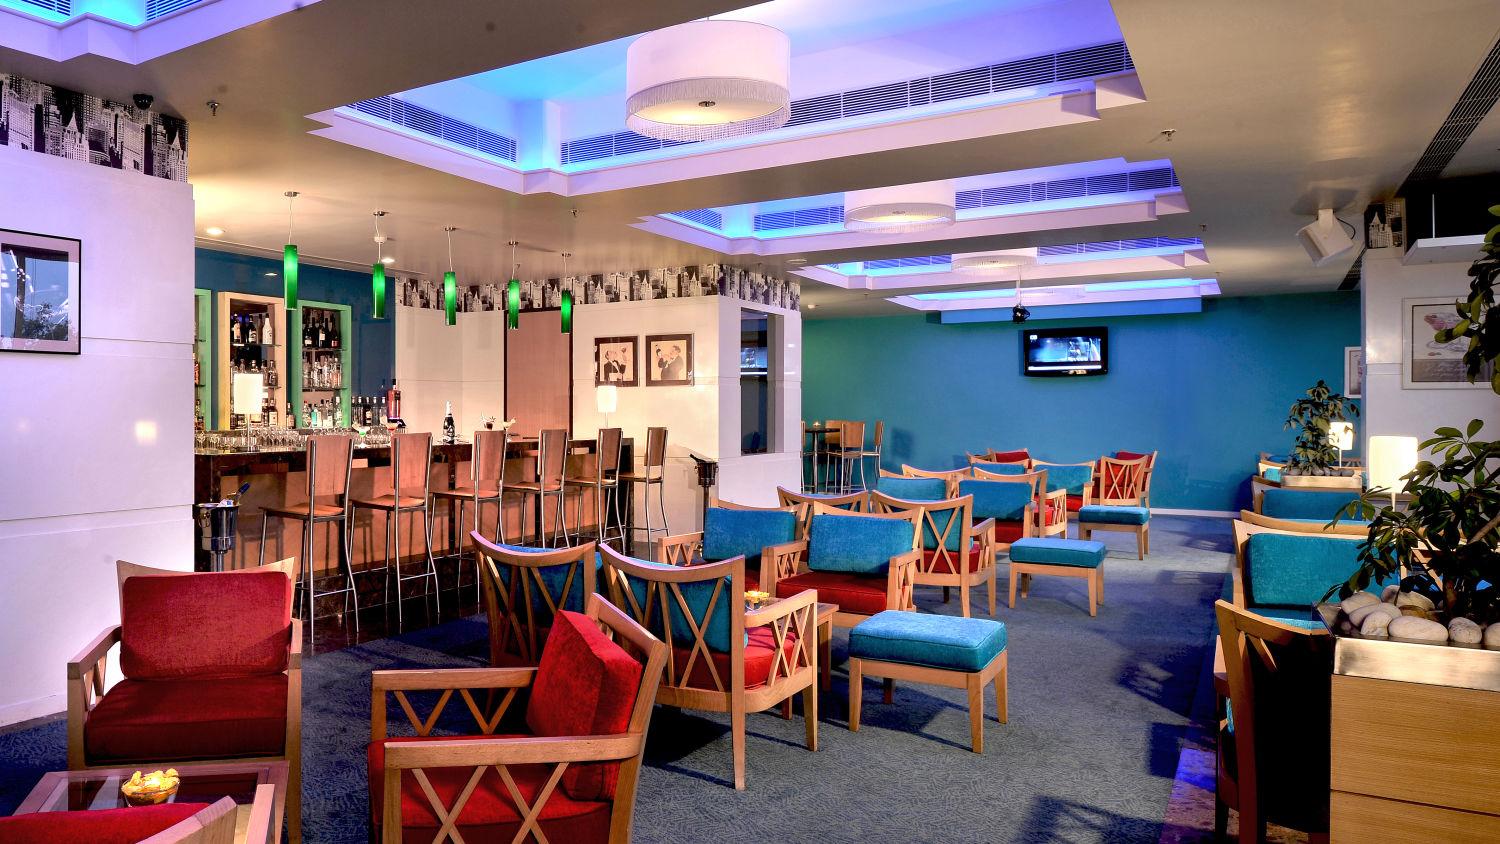 Chill - The lounge Bar in chandigarh at Hoemtel Chandigarh